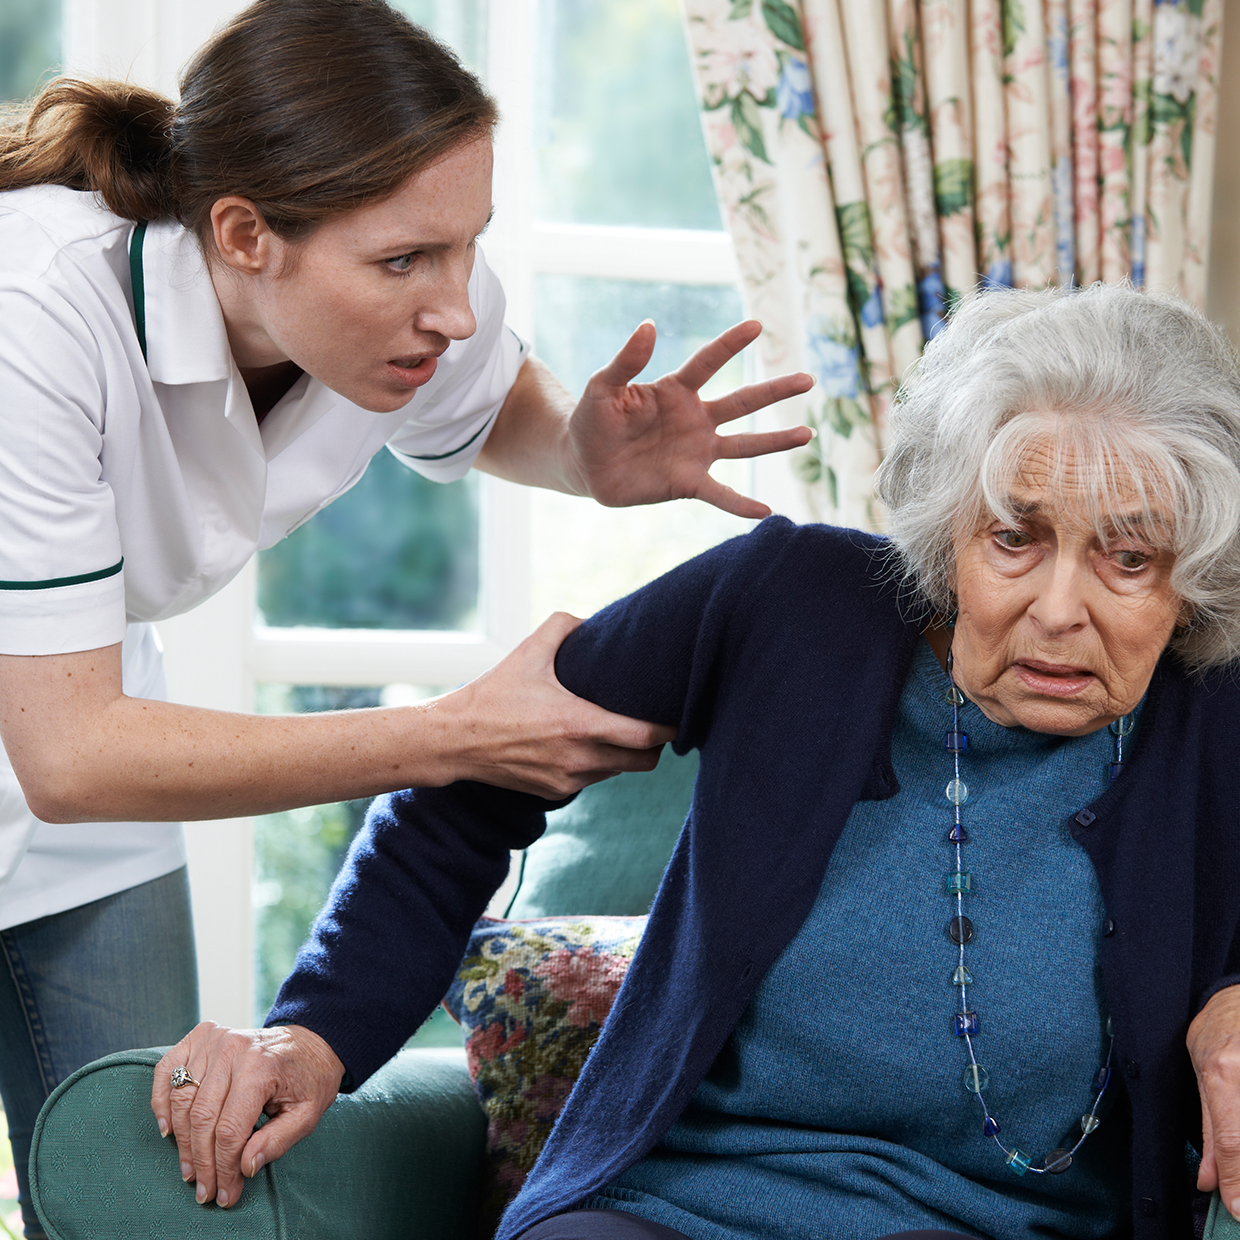 Nurse grabbing elder woman and screaming at her